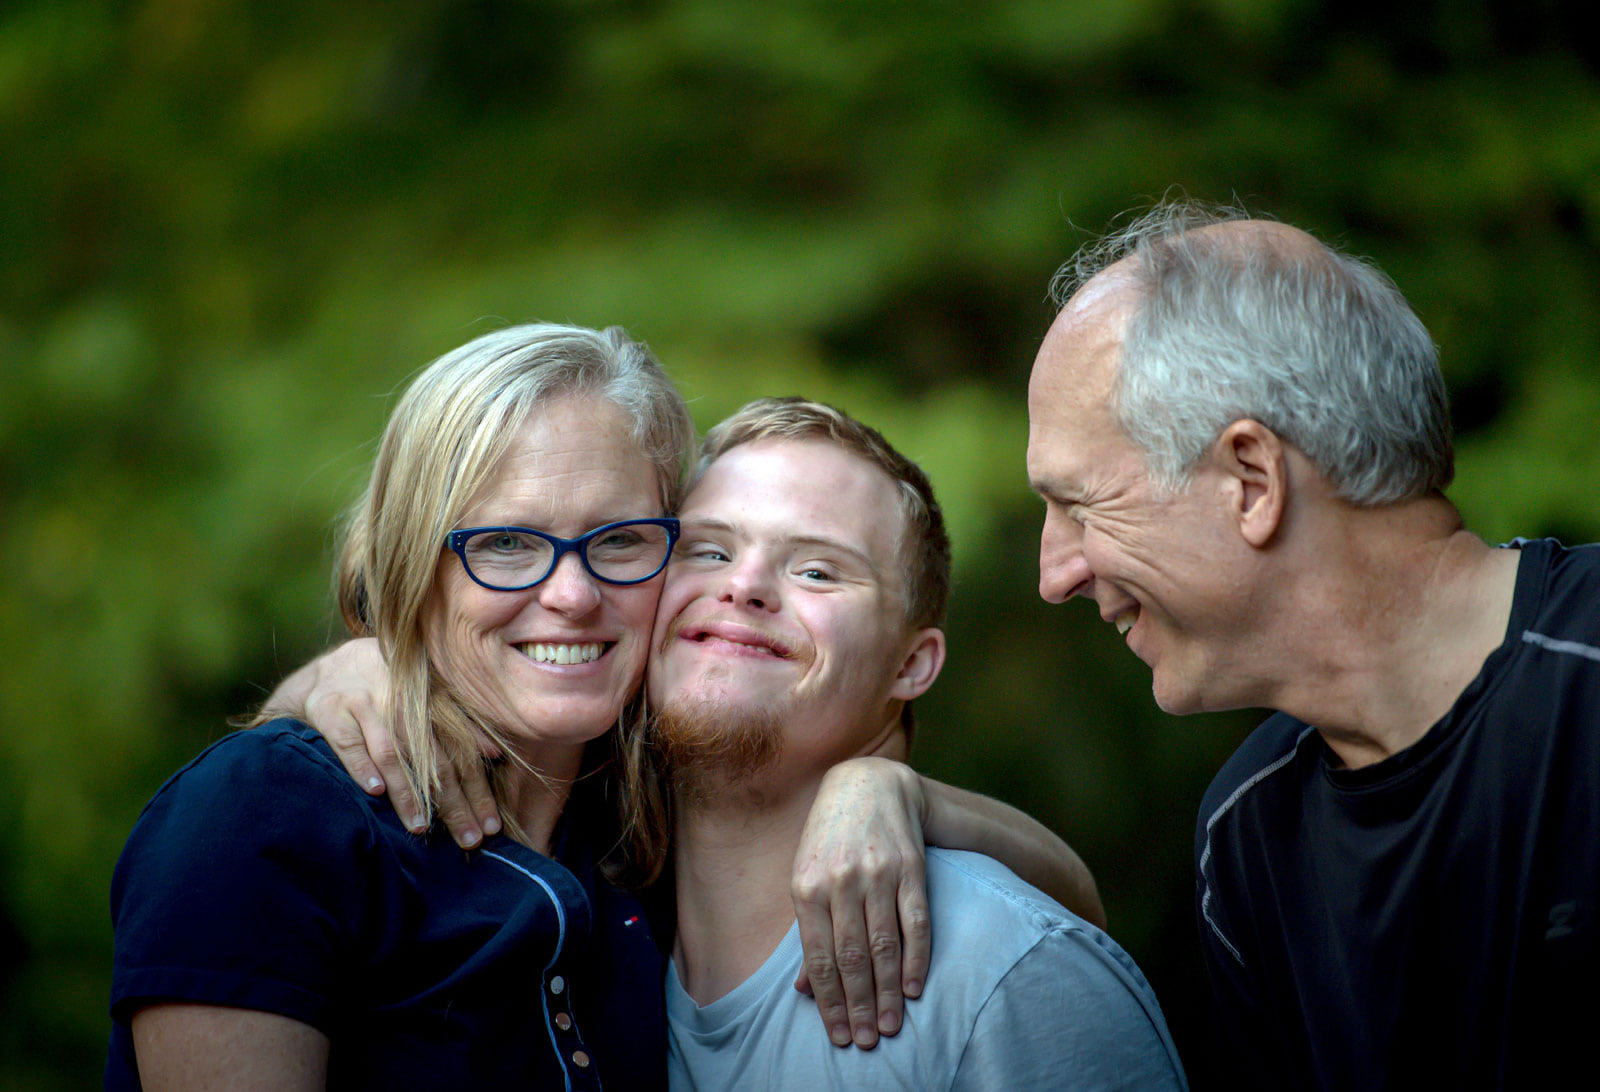 Smiling close up portrait of mother, father and developmentally disabled son